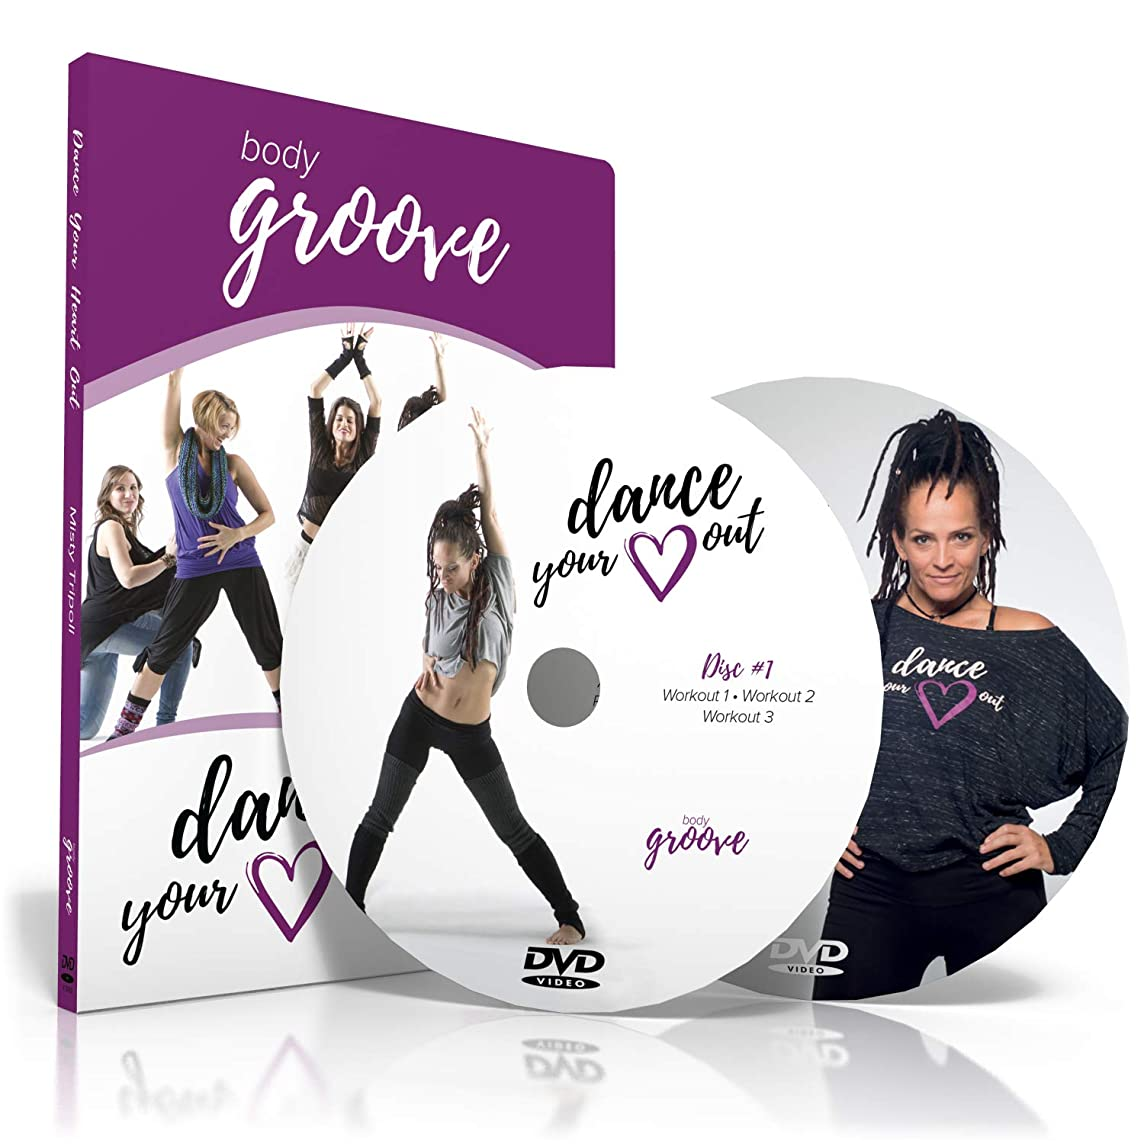 Body Groove Dance Your Heart Out DVD Collection